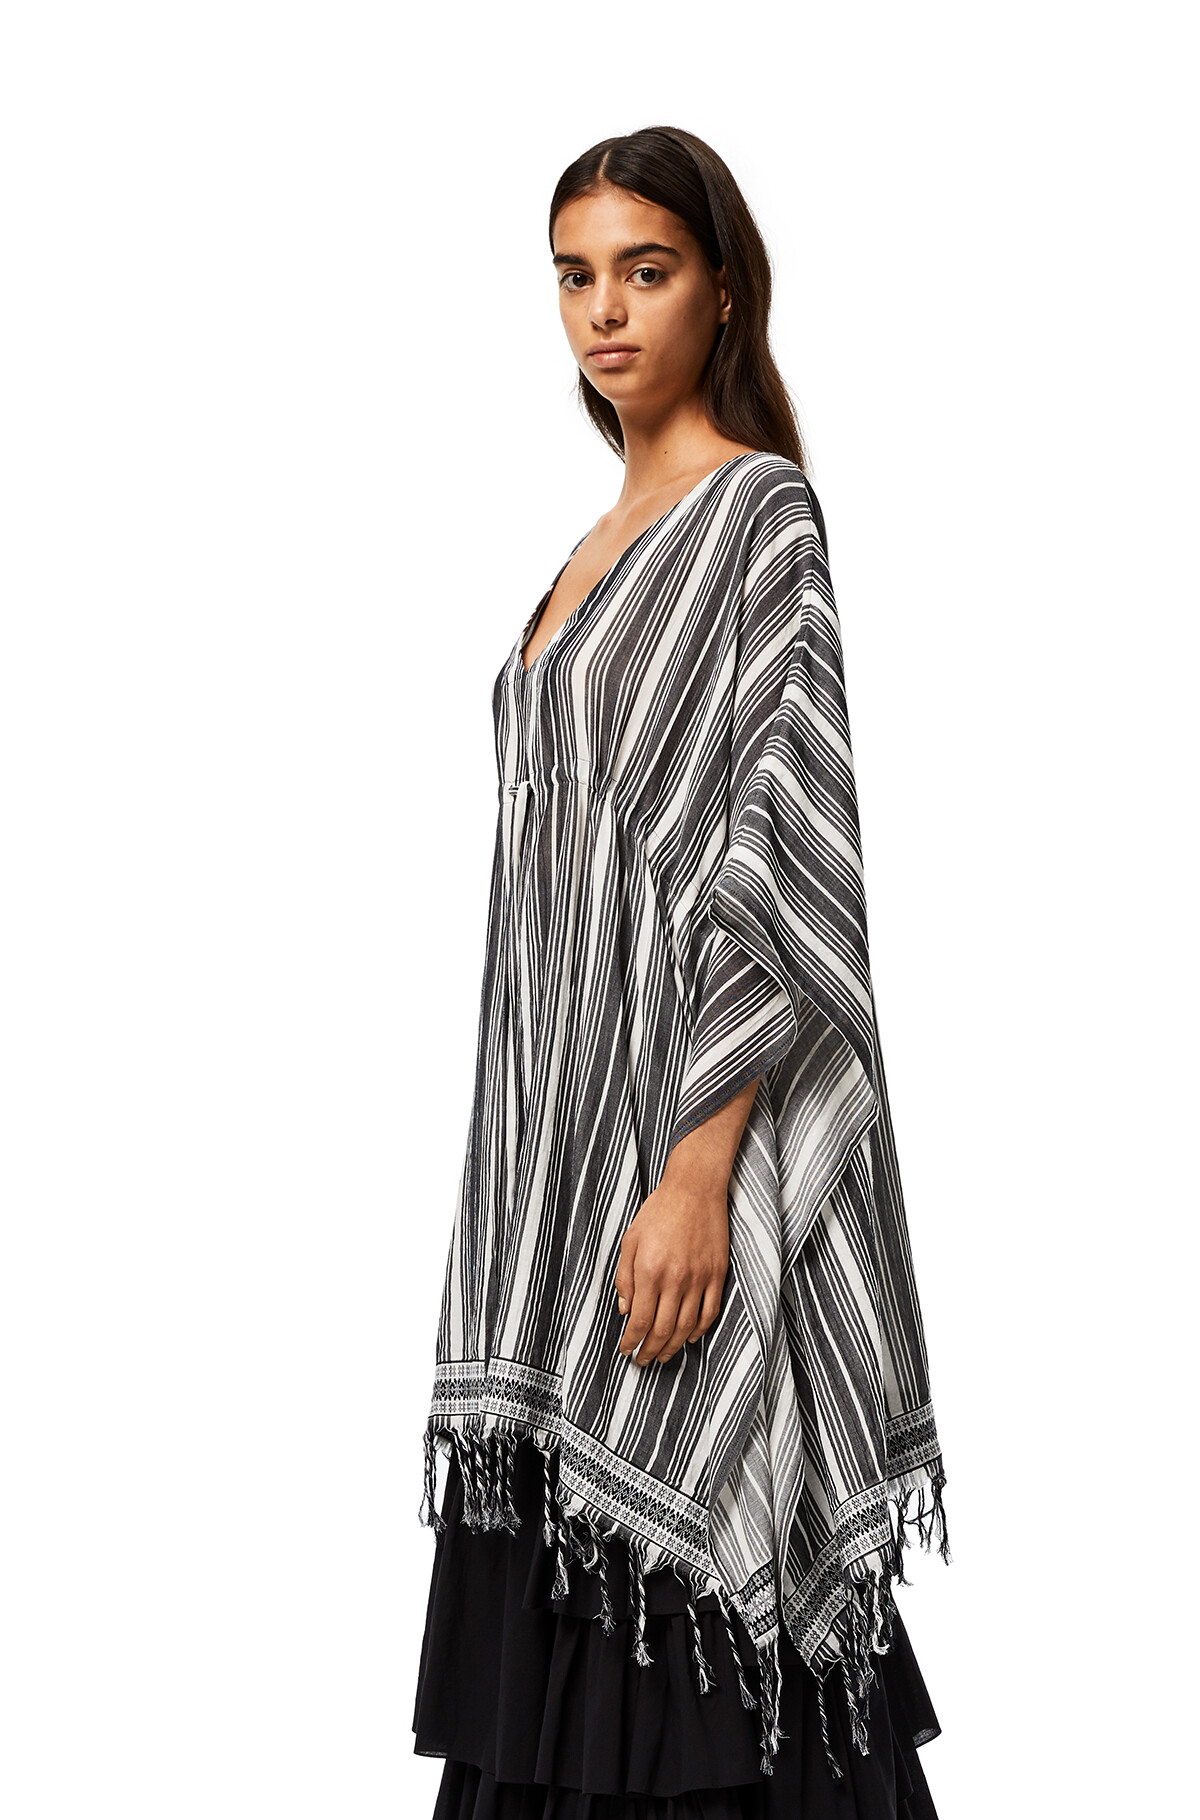 LOEWE Caftan-Style Top In Striped Linen Black/White front